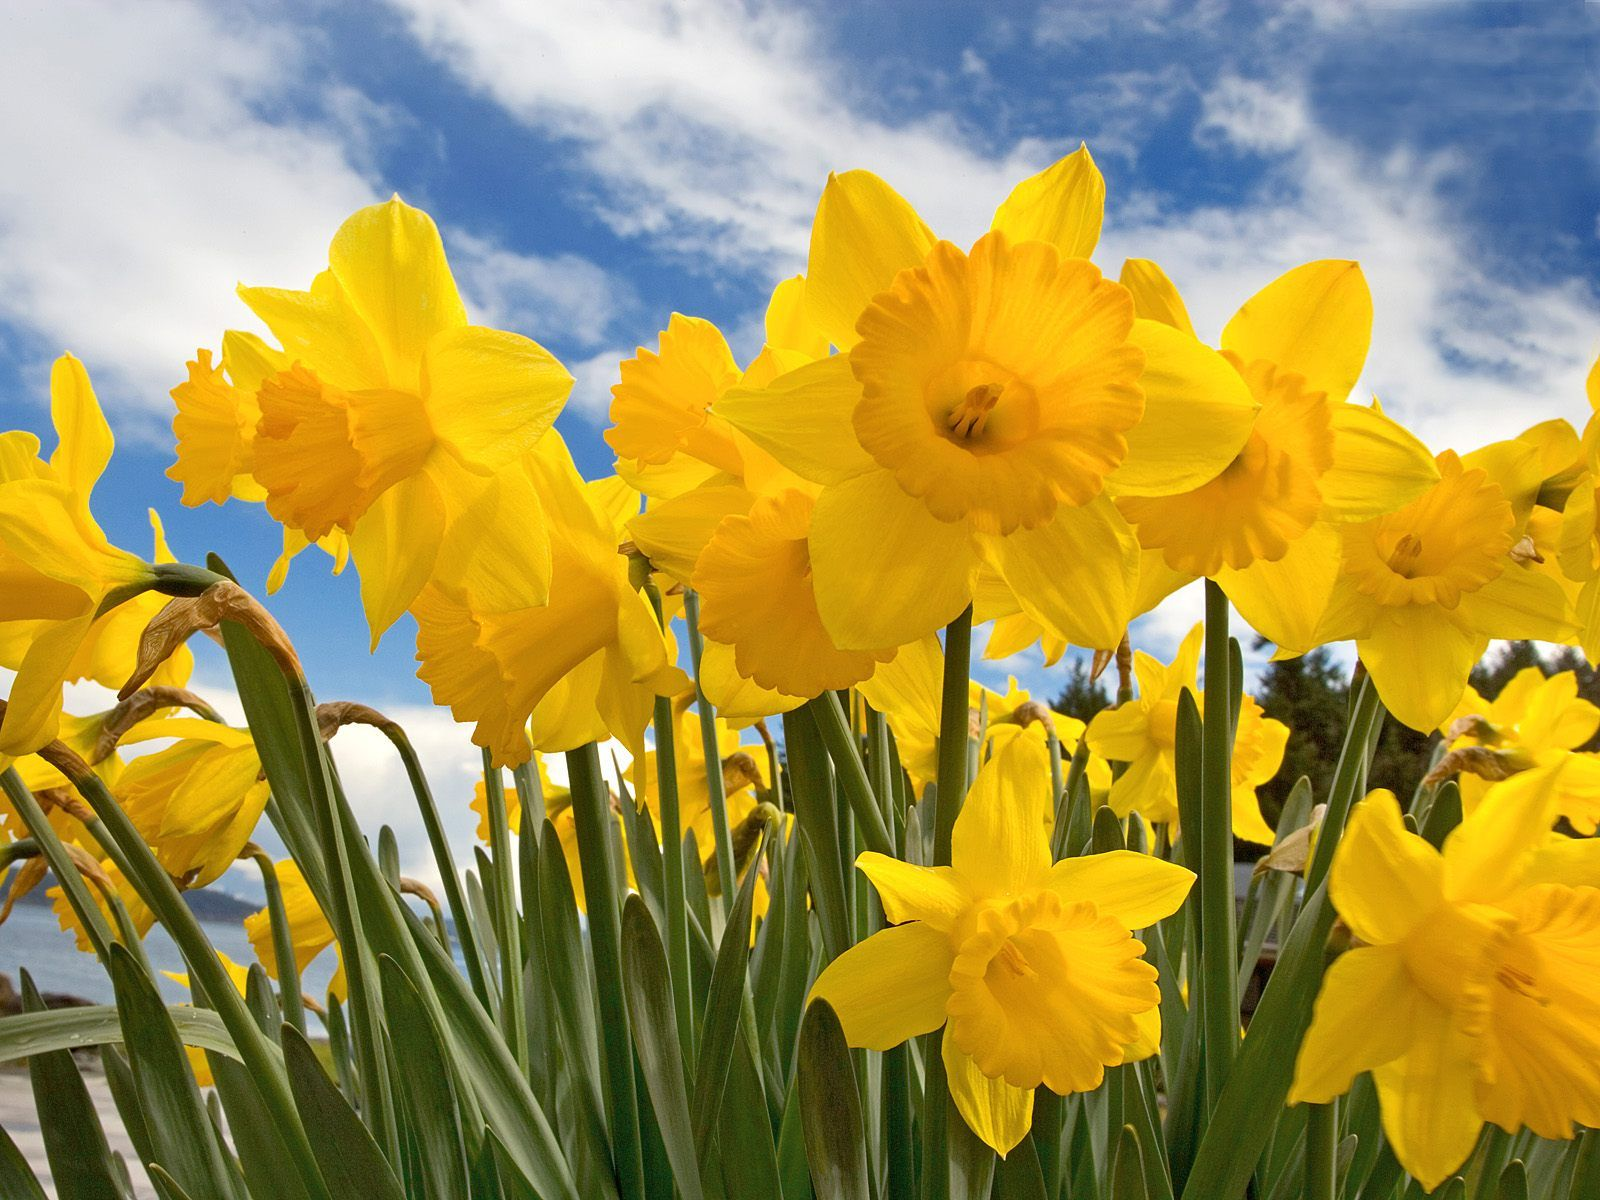 Daffodils by william wordsworthtailed revision notes for waec commentary buycottarizona